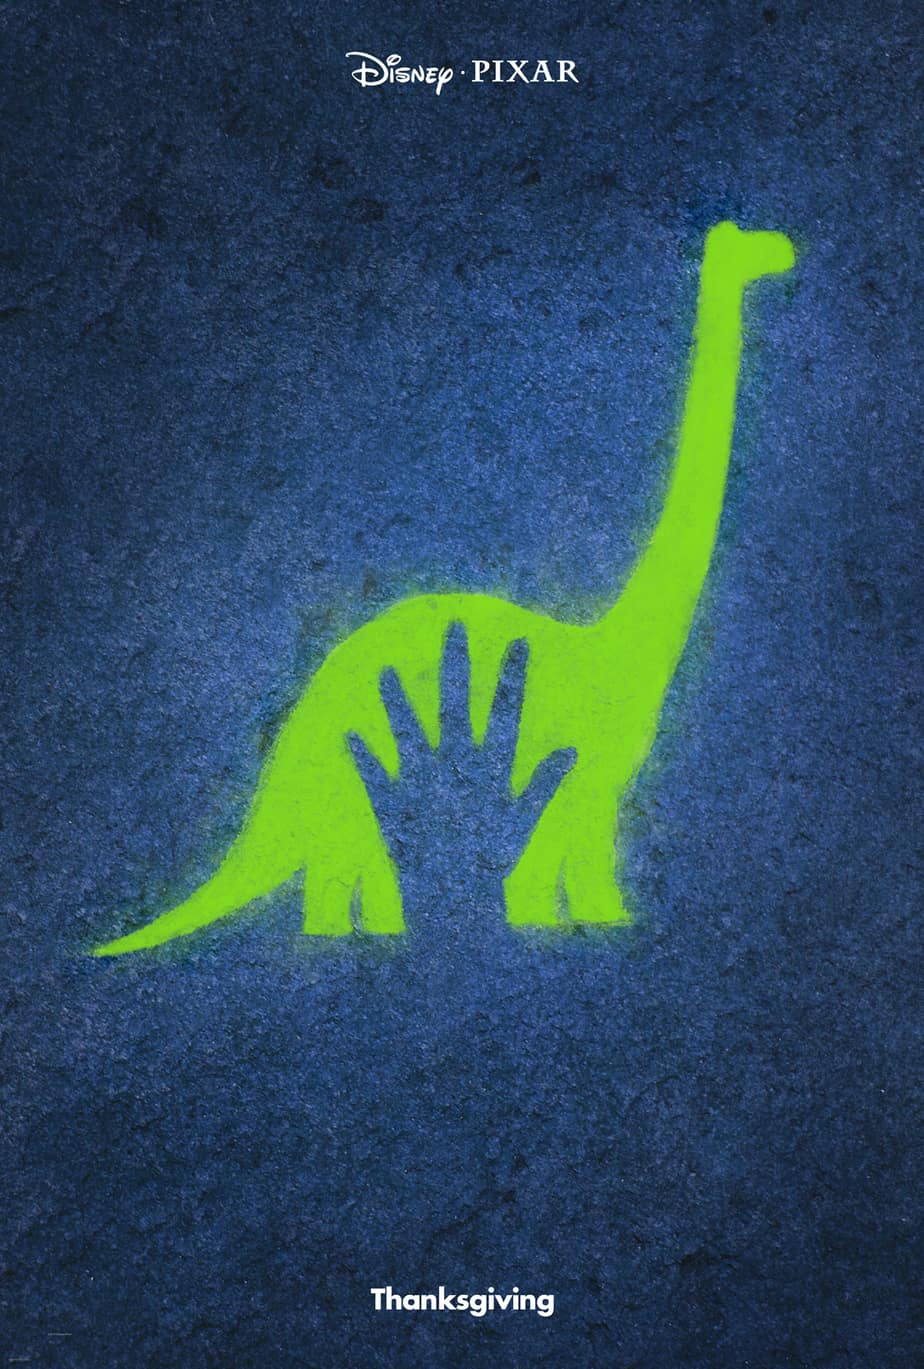 Movie Sneak Peek: Disney – Pixar's The Good Dinosaur